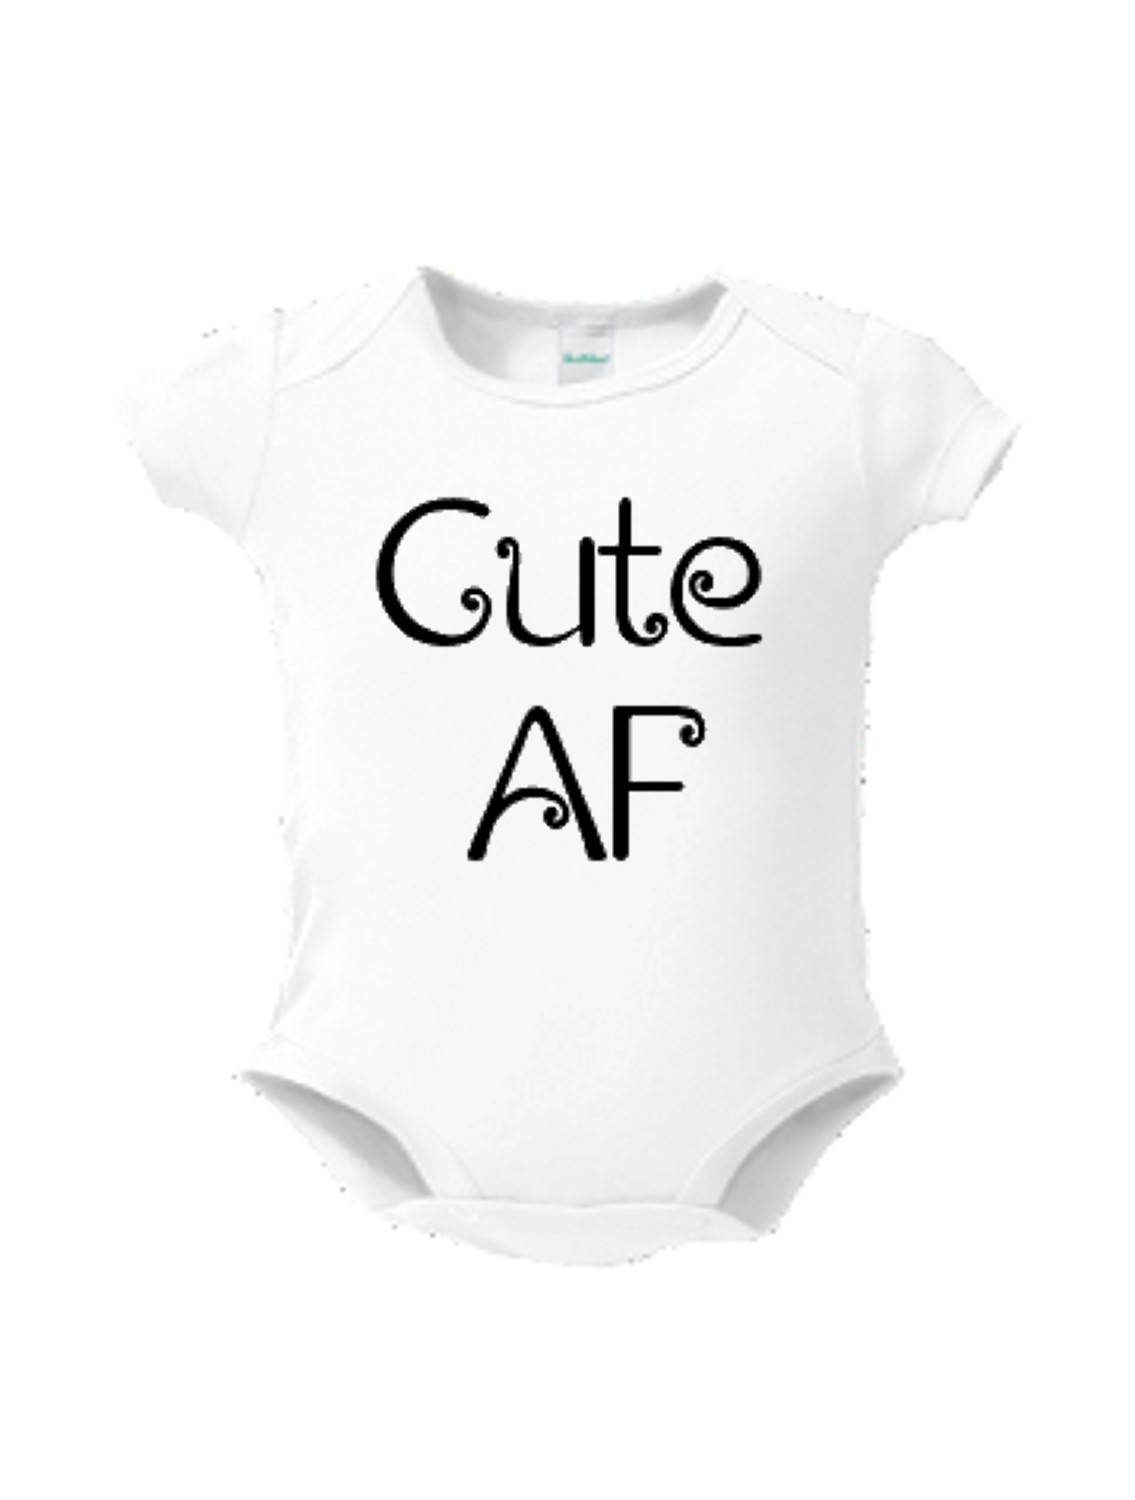 1135x1500 cute af shirt cute af baby girl clothes cute baby gift etsy